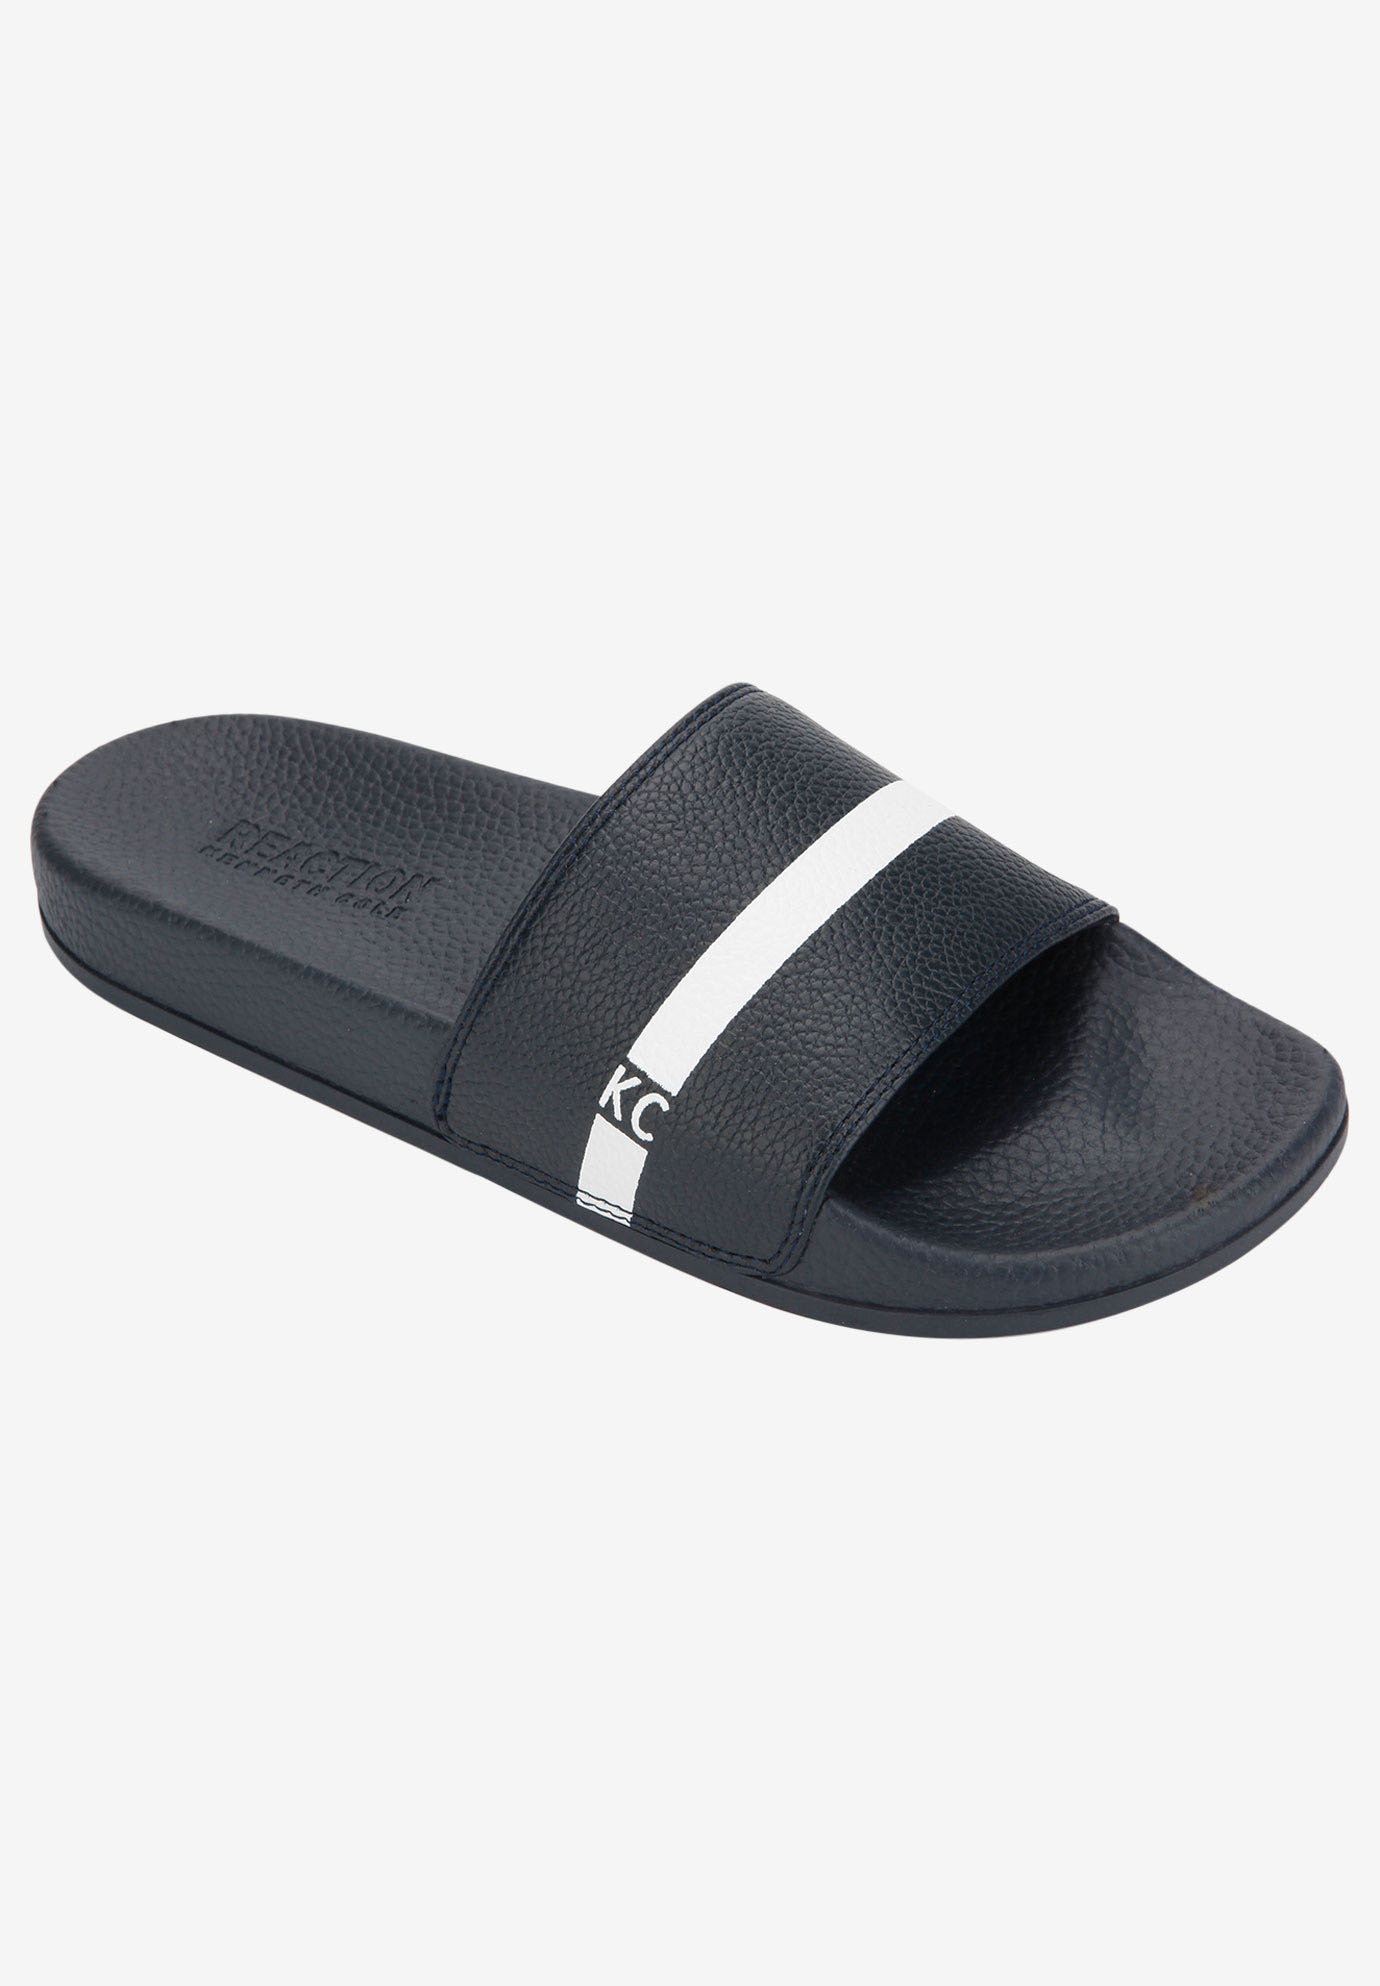 REACTION Kenneth Cole® Big Screen Slide Sandals,